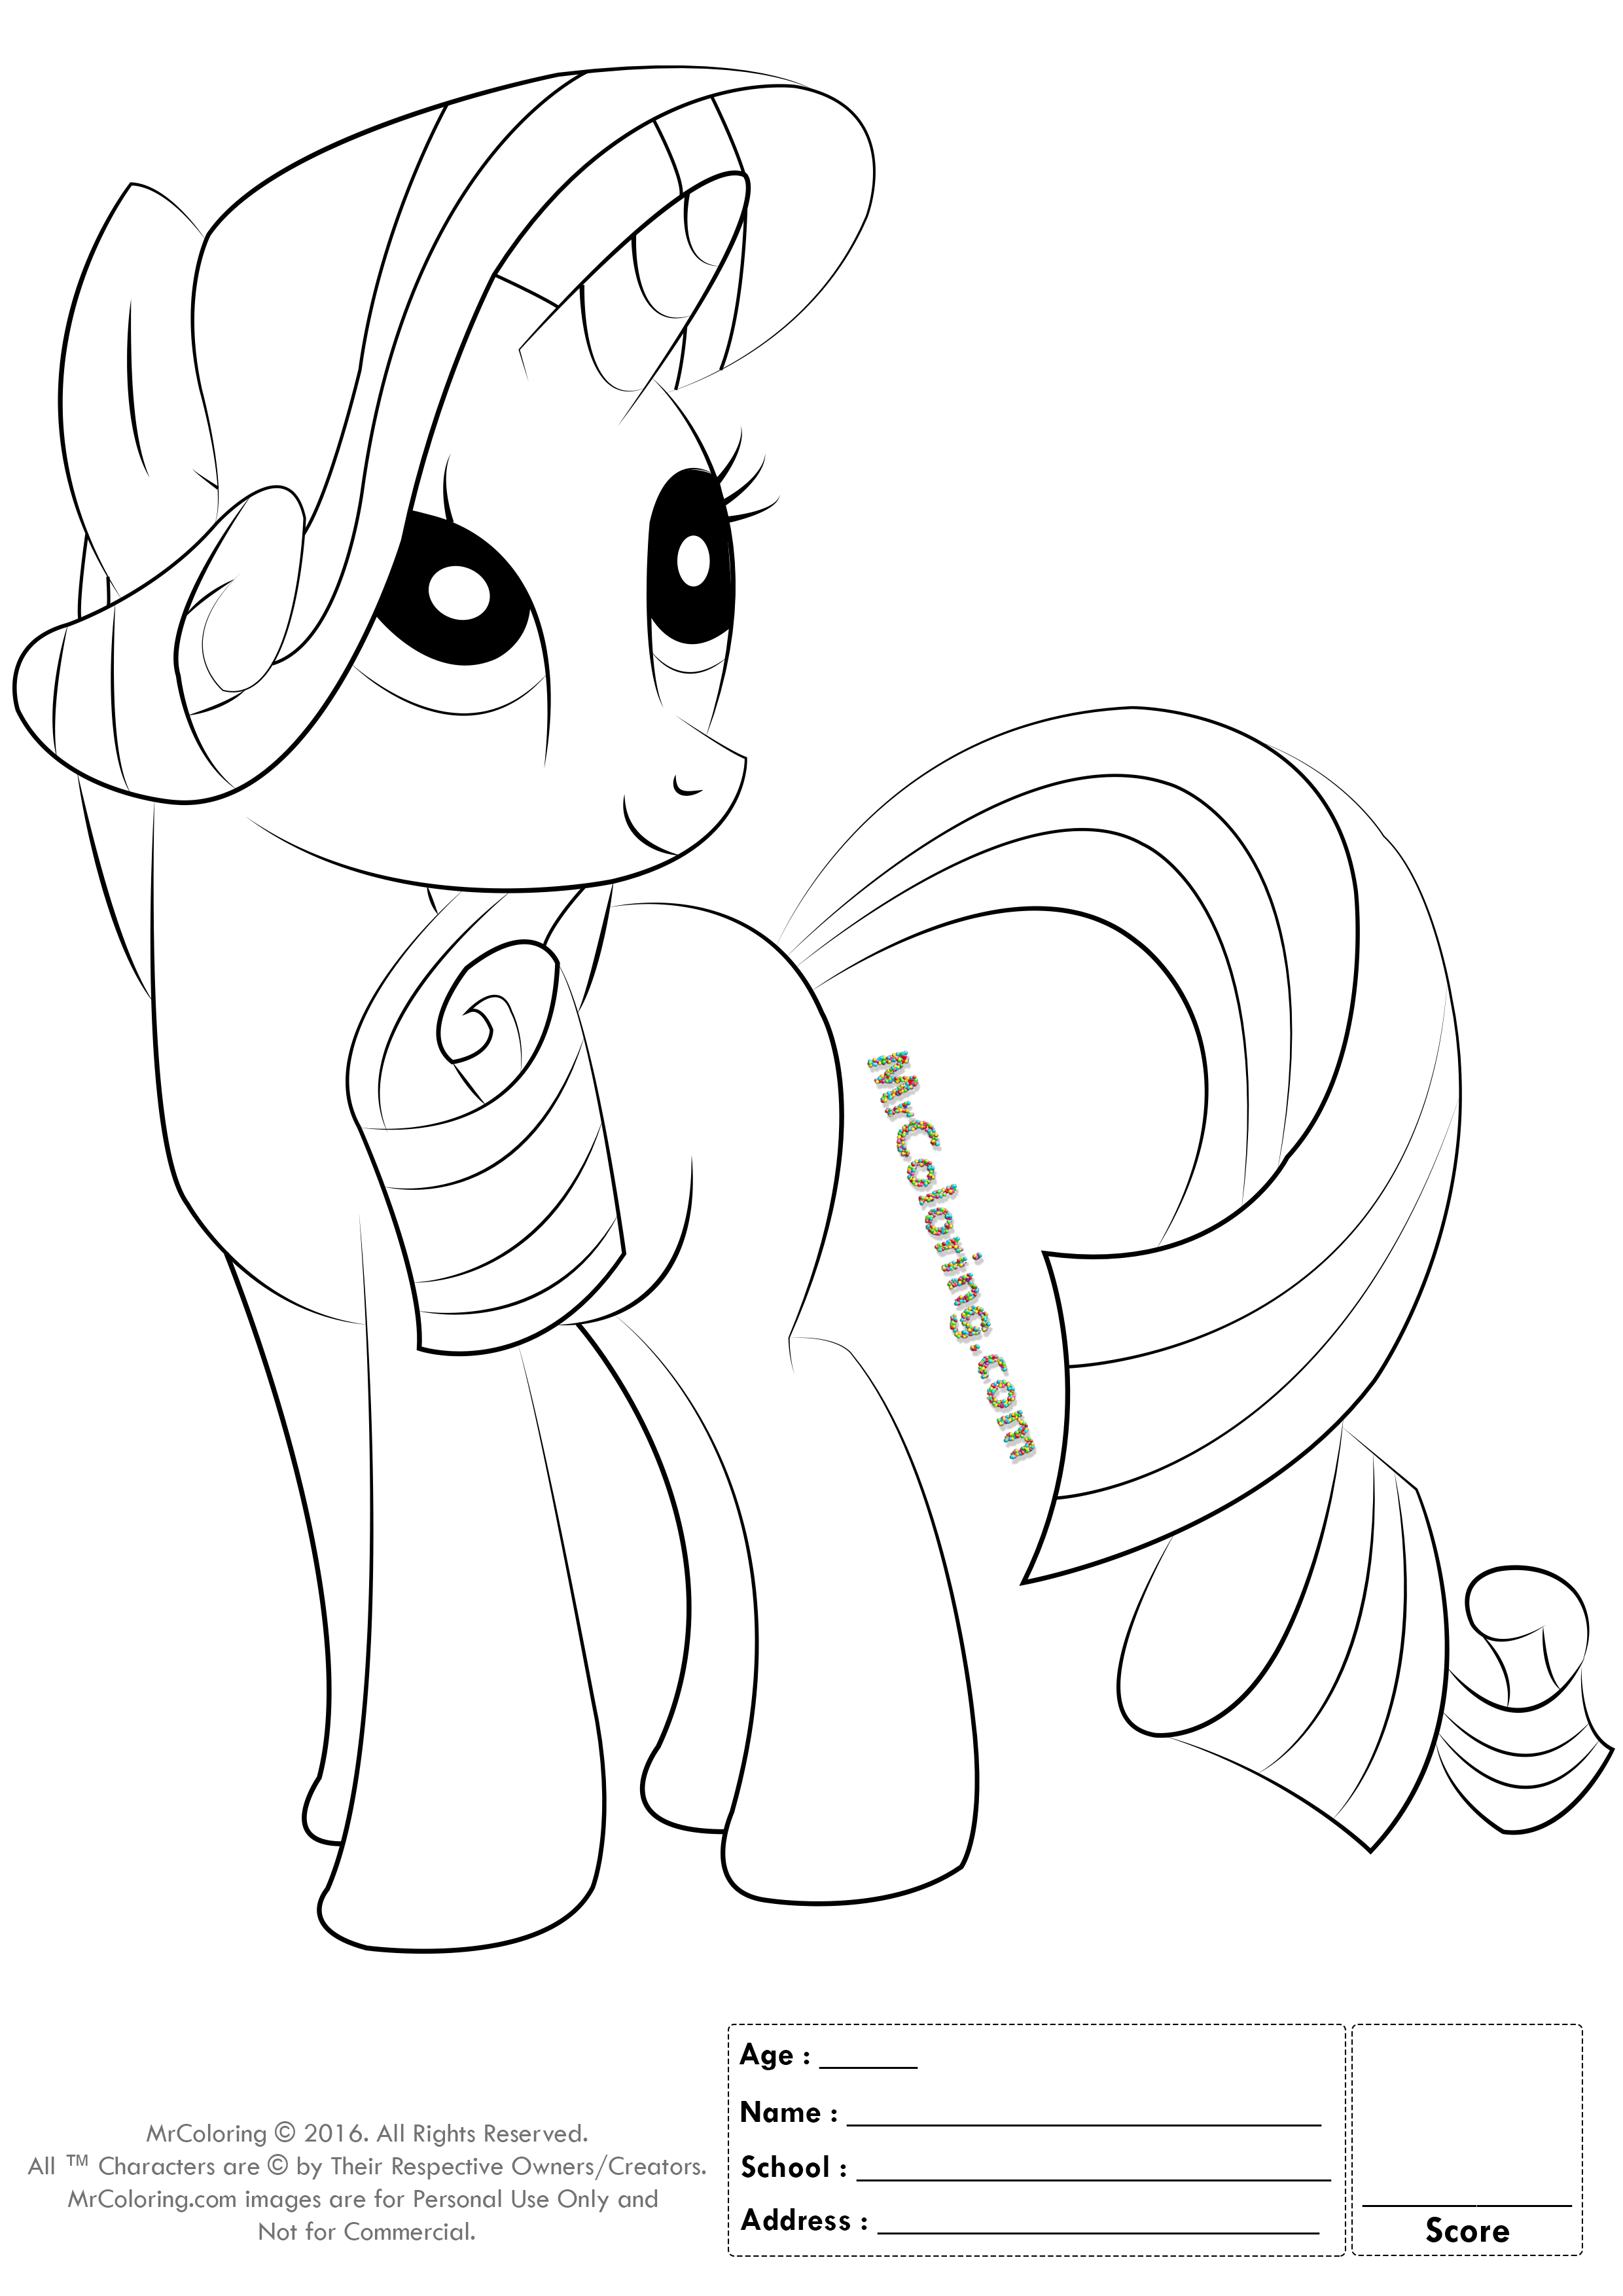 mlp coloring pages rarity old school | Coloring Page For My Little Pony Rarity - Coloring Home